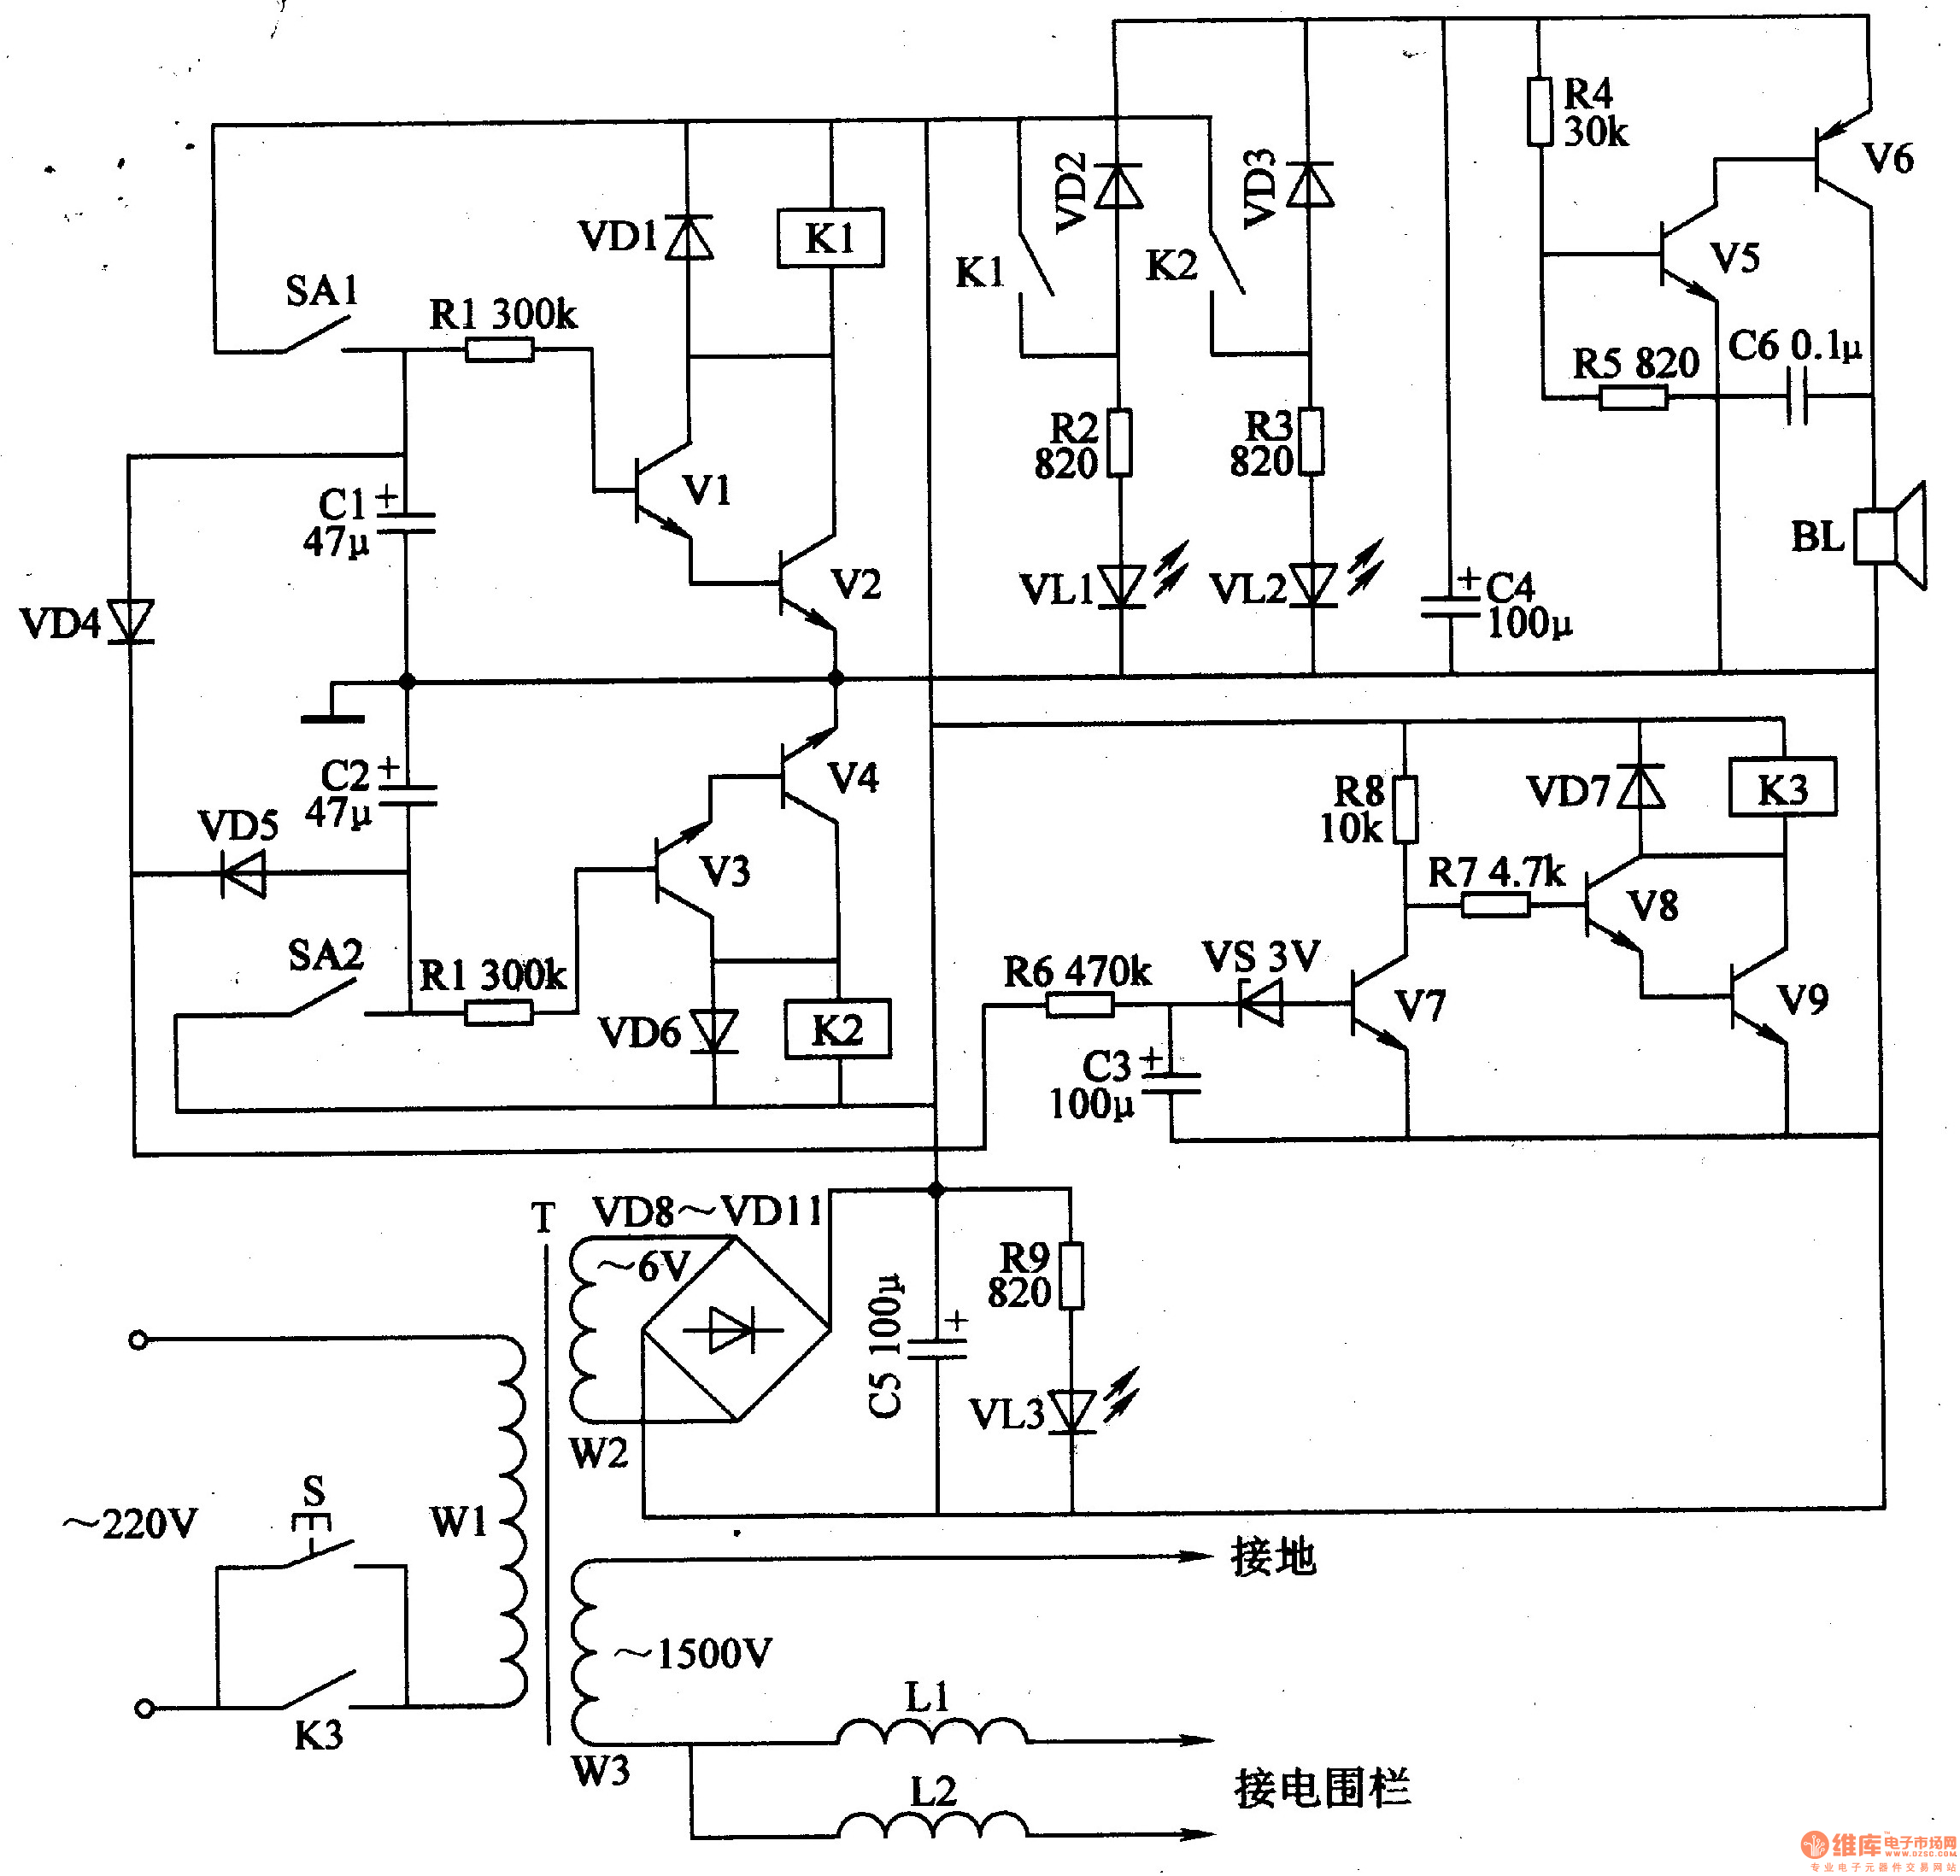 Electric Fence Control Circuit 5 Diagram Wwwseekiccom Circuitdiagram Powersupplycircuit Negativevoltage